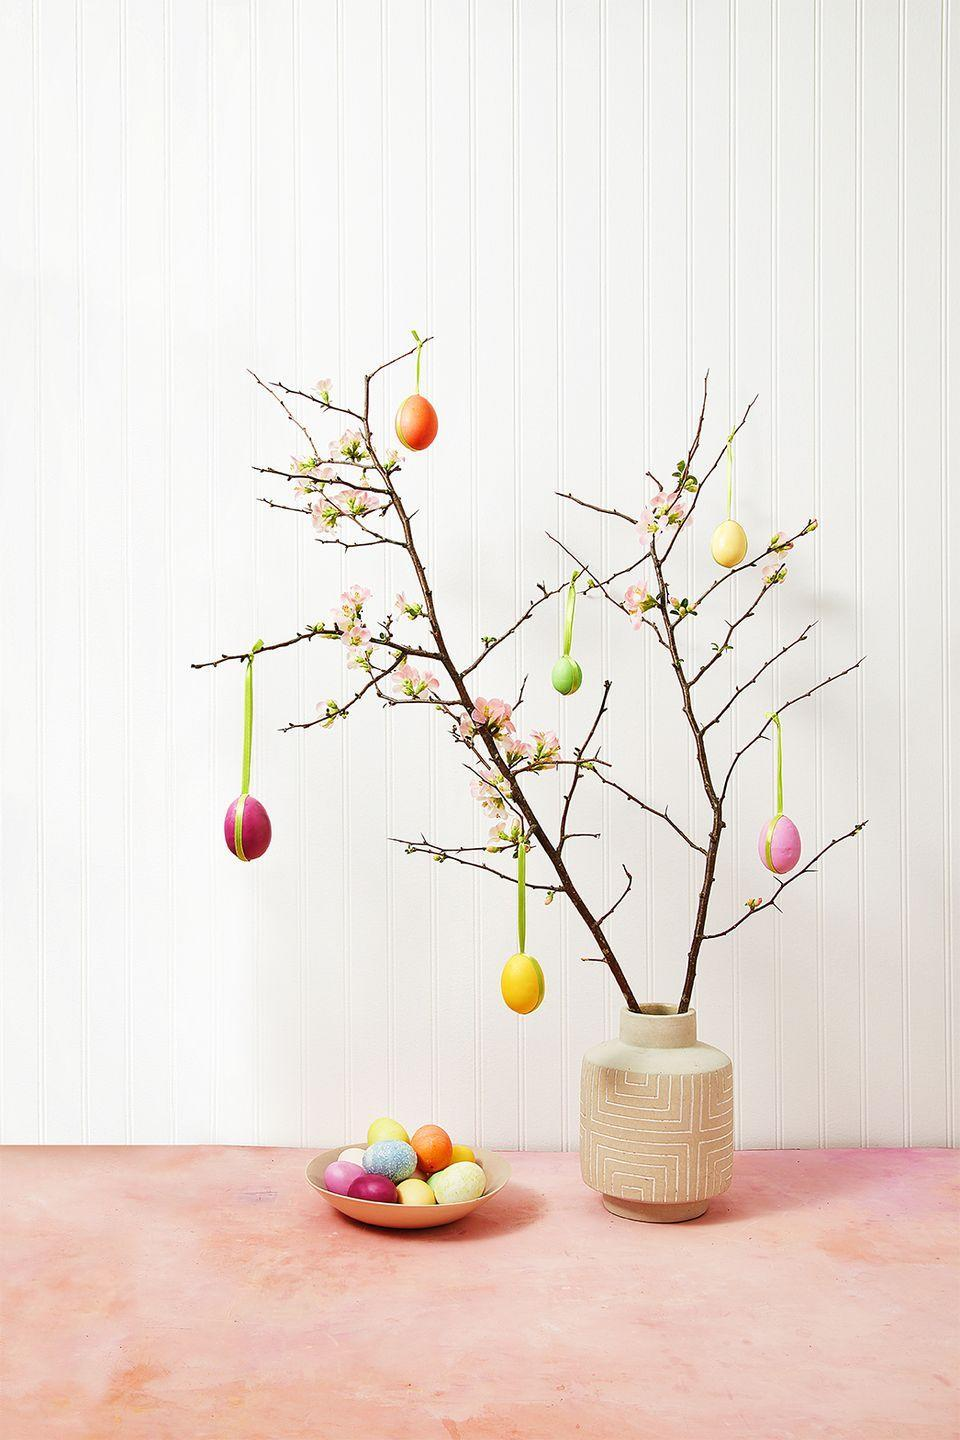 """<p>Gather sturdy branches from your yard or local florist. We used flowering quince branches but you can use pussy willow, forsythia, cherry blossom, magnolia, and dogwood. Place the branches in a heavy vase. </p><p>Gather blown out eggs or lightweight faux craft eggs. Cut a 20-inch piece of thin ribbon. Using hot glue, attach the bottom of the egg to the midpoint of the ribbon. Wrap the ribbon around the egg and attach to the top of the egg with hot glue. Once dry, tie the eggs onto the branches and trim excess ribbon.</p><p><a class=""""link rapid-noclick-resp"""" href=""""https://www.amazon.com/Juvale-48-Count-Plastic-Easter-Eggs/dp/B071NTSY55/?tag=syn-yahoo-20&ascsubtag=%5Bartid%7C10055.g.2217%5Bsrc%7Cyahoo-us"""" rel=""""nofollow noopener"""" target=""""_blank"""" data-ylk=""""slk:BUY CRAFT EGGS"""">BUY CRAFT EGGS</a></p><p><strong>RELATED</strong>: <a href=""""https://www.goodhousekeeping.com/holidays/easter-ideas/g26809936/diy-easter-tree-ideas/"""" rel=""""nofollow noopener"""" target=""""_blank"""" data-ylk=""""slk:How to Get Your Easter Egg Tree to Make a Statement This Spring"""" class=""""link rapid-noclick-resp"""">How to Get Your Easter Egg Tree to Make a Statement This Spring</a></p>"""